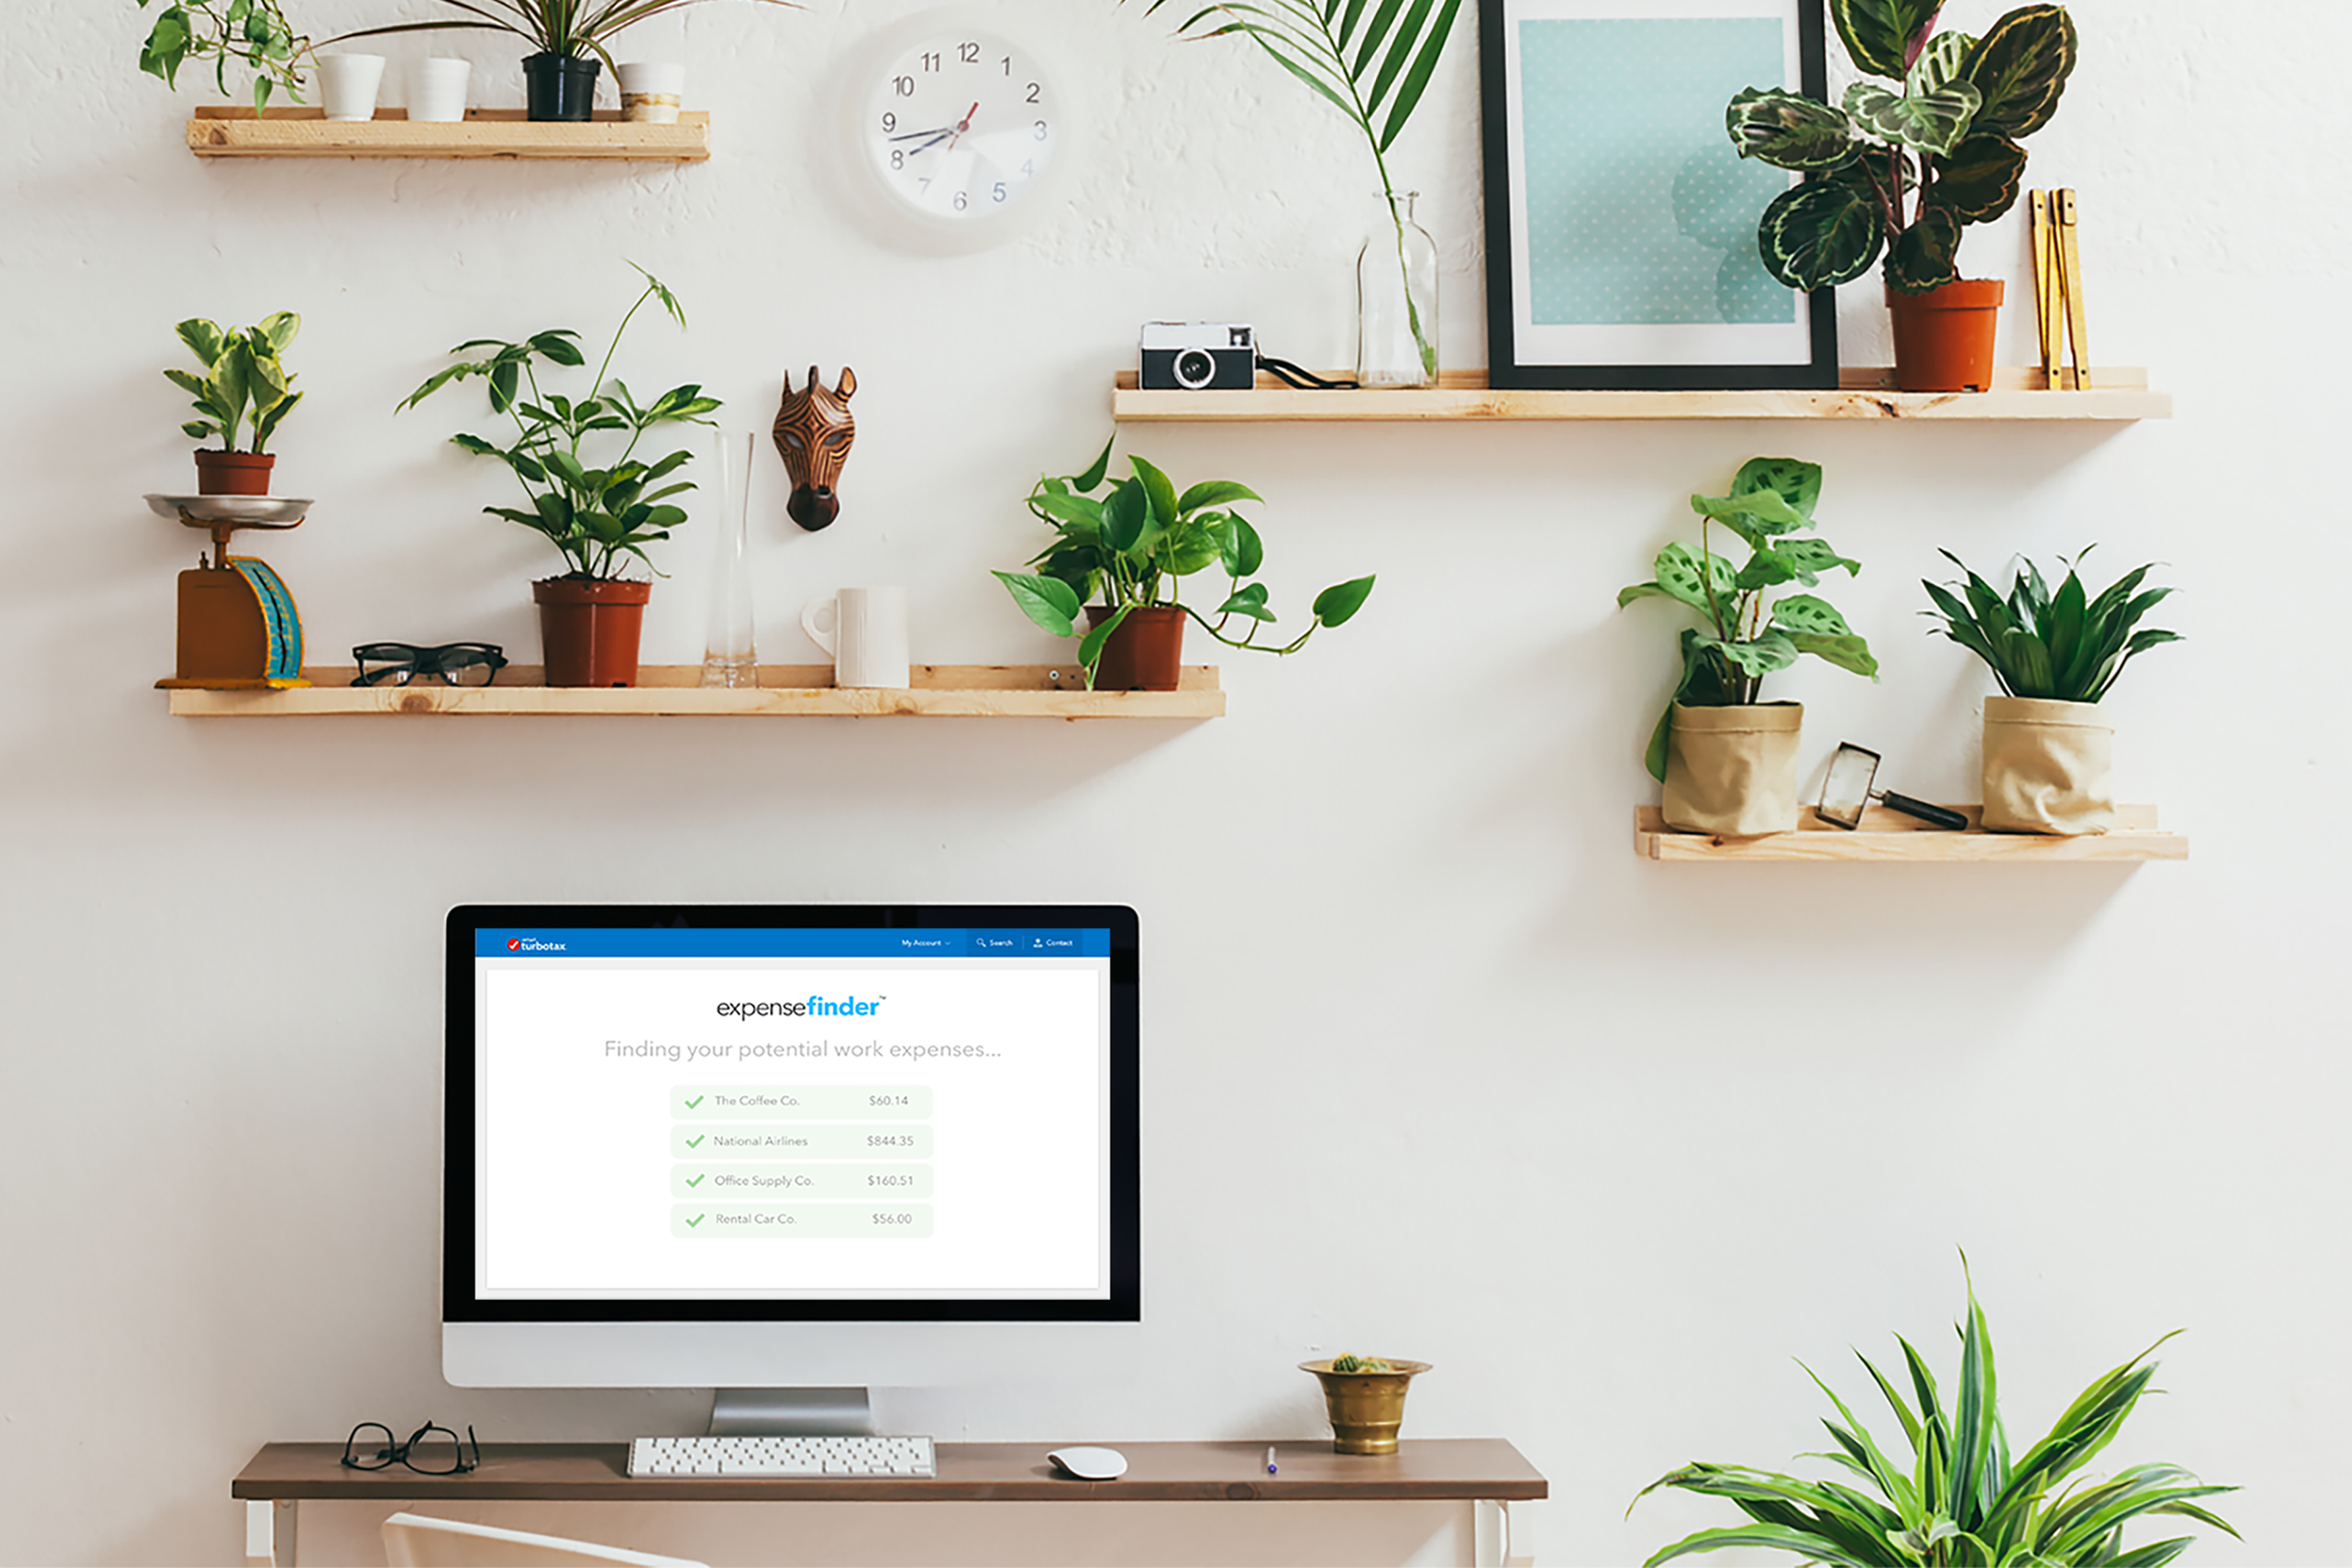 Incroyable Intuit TurboTax Team Helps Self Employed People Track Expenses For A Better  Tax Experience | Intuit®: Official Blog